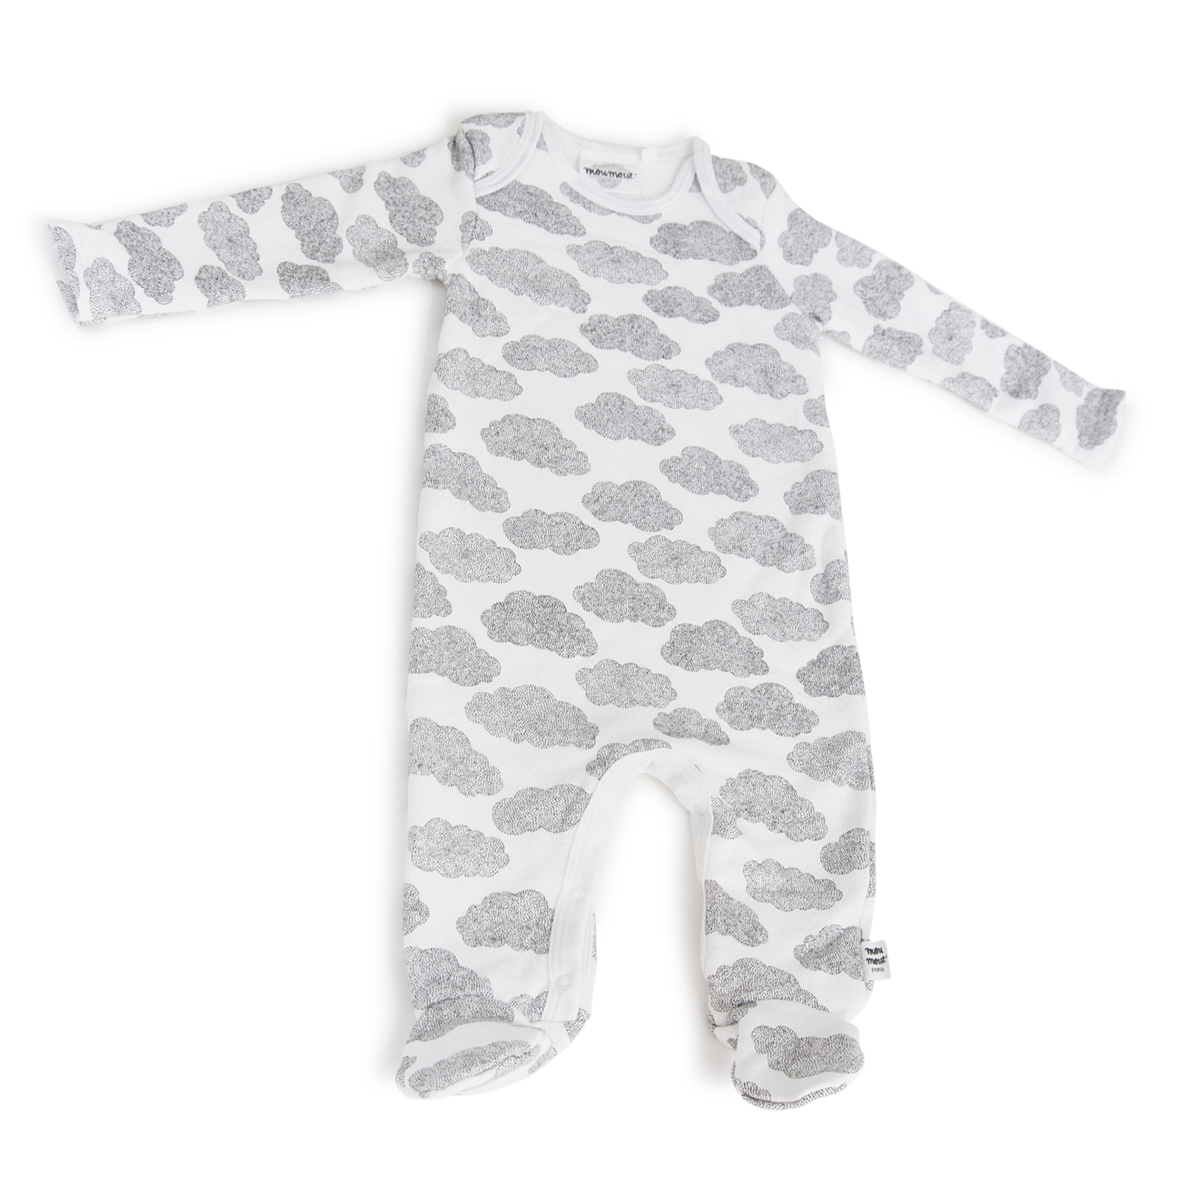 Body & Pyjama Pyjama Bobo Feet Cotton Nuages - 18 Mois Pyjama Bobo Feet Cotton Nuages - 18 Mois